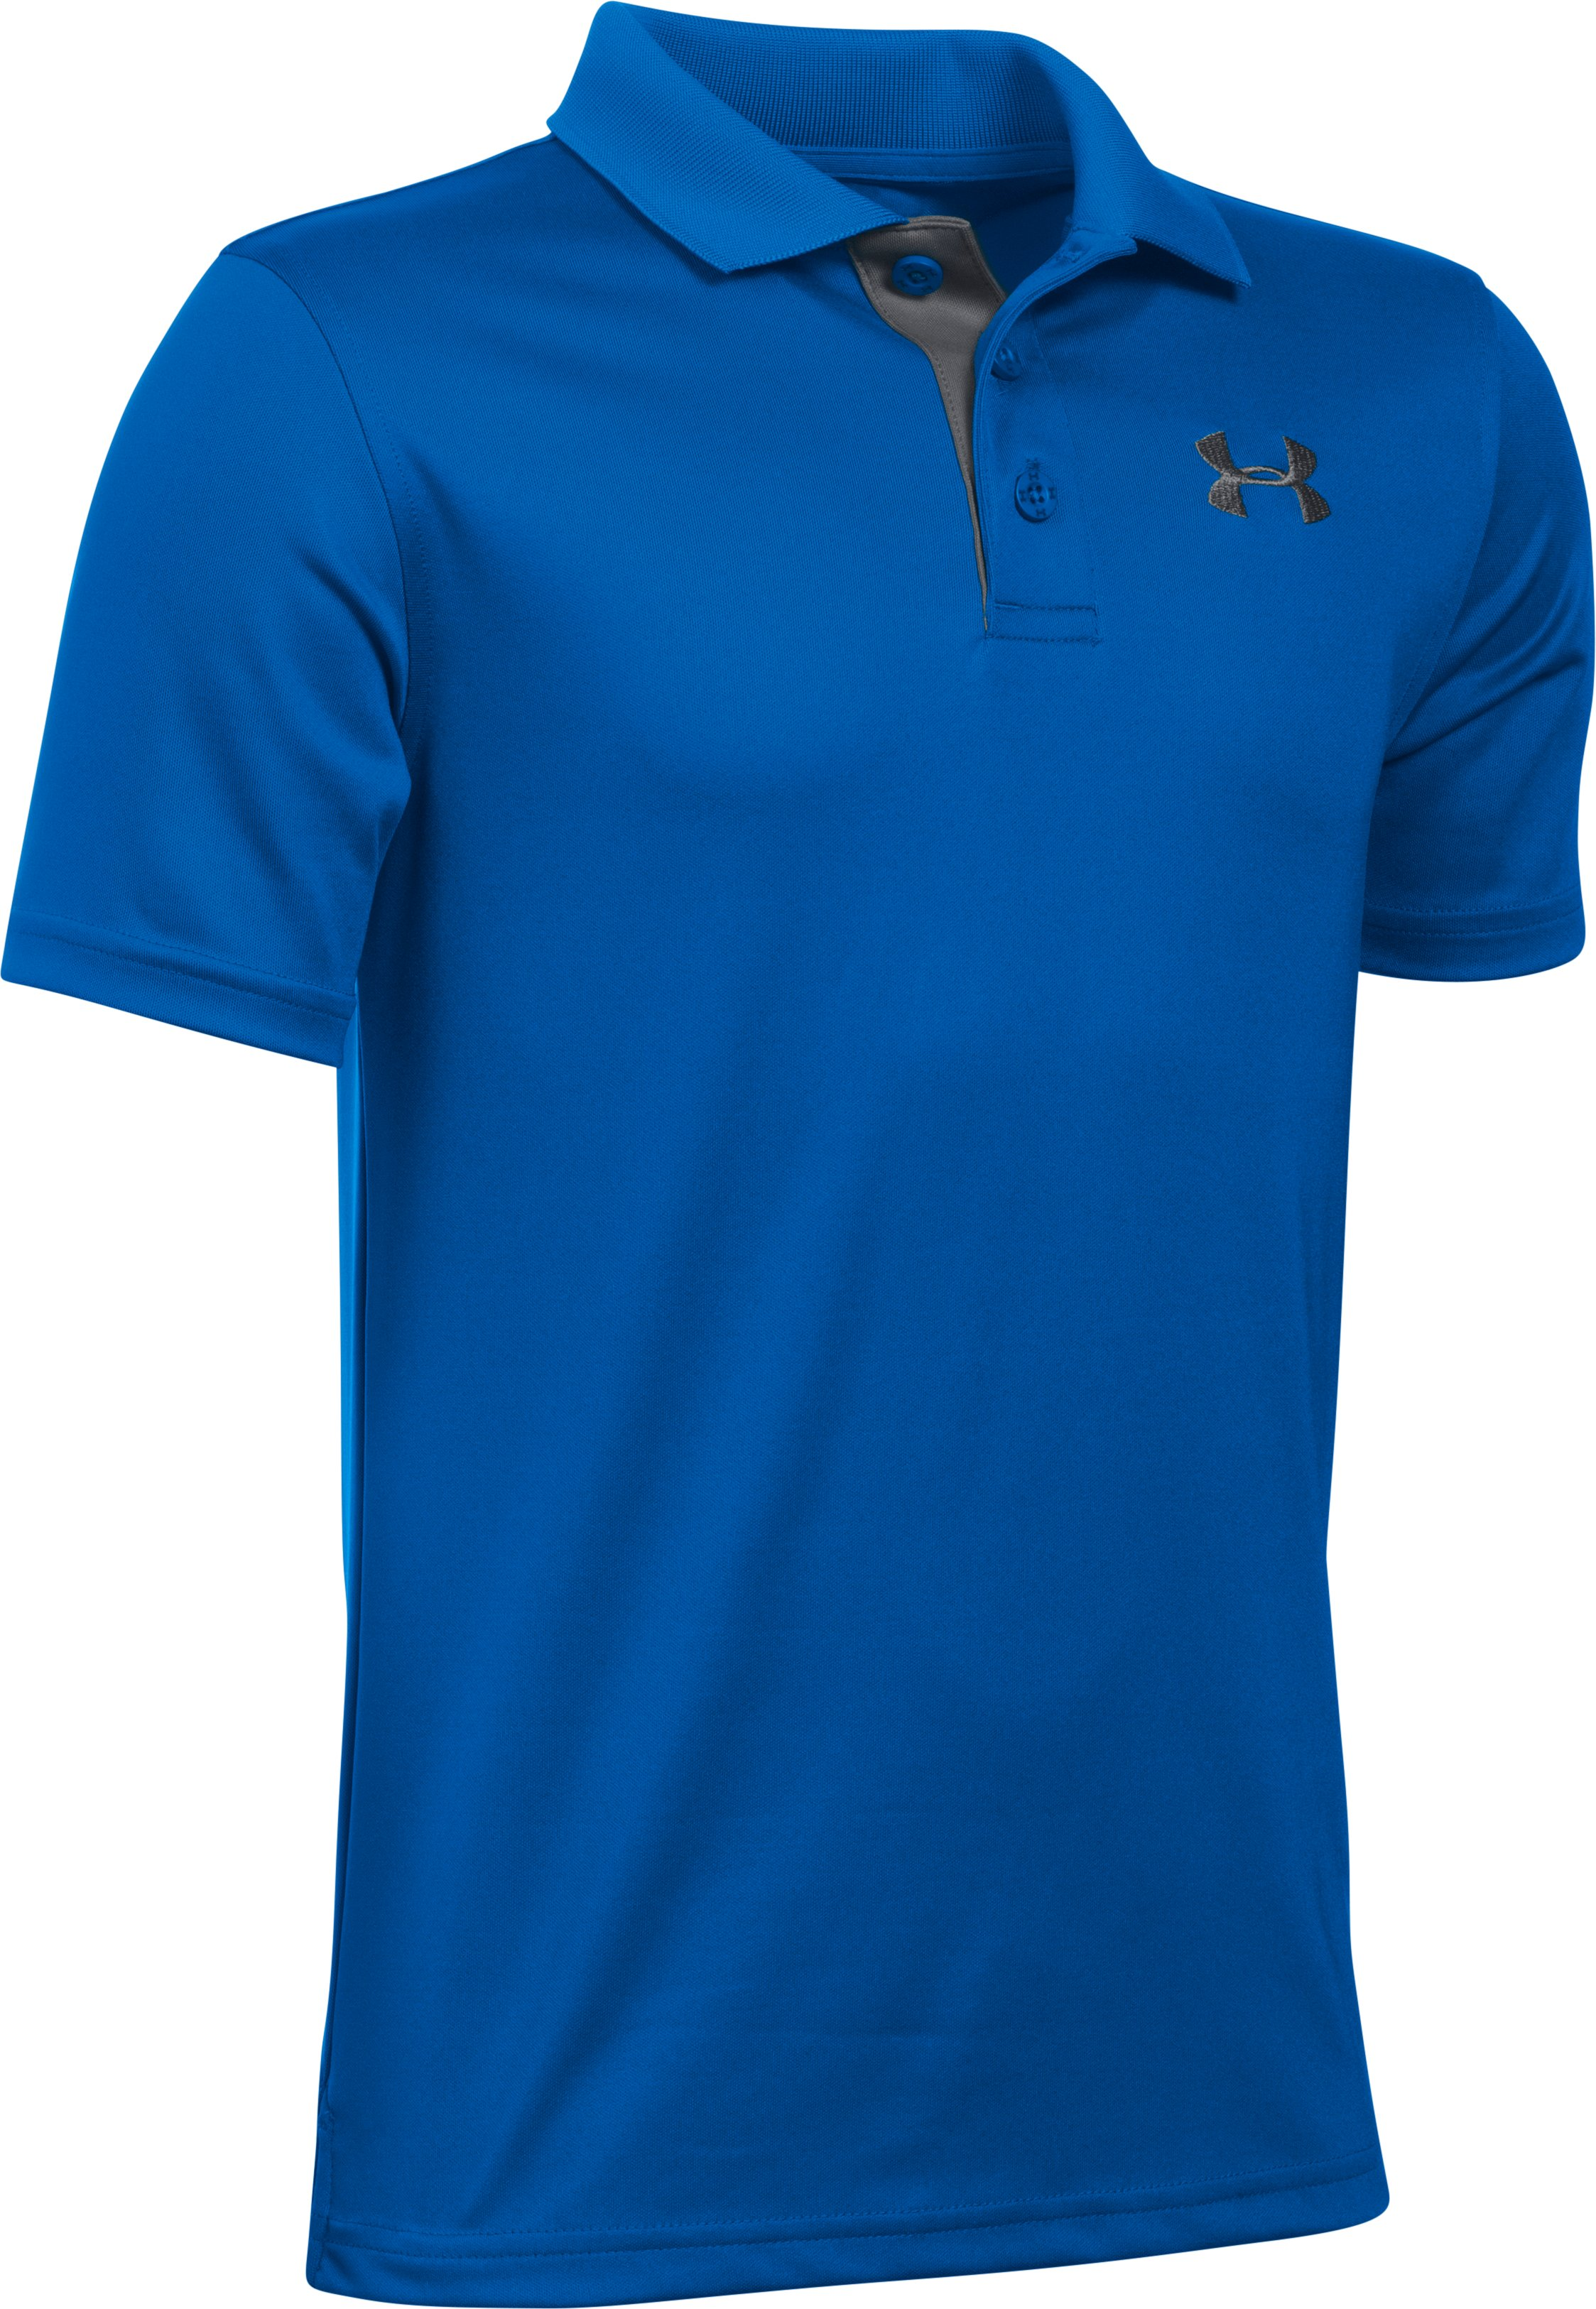 Boys' UA Match Play Polo, ULTRA BLUE